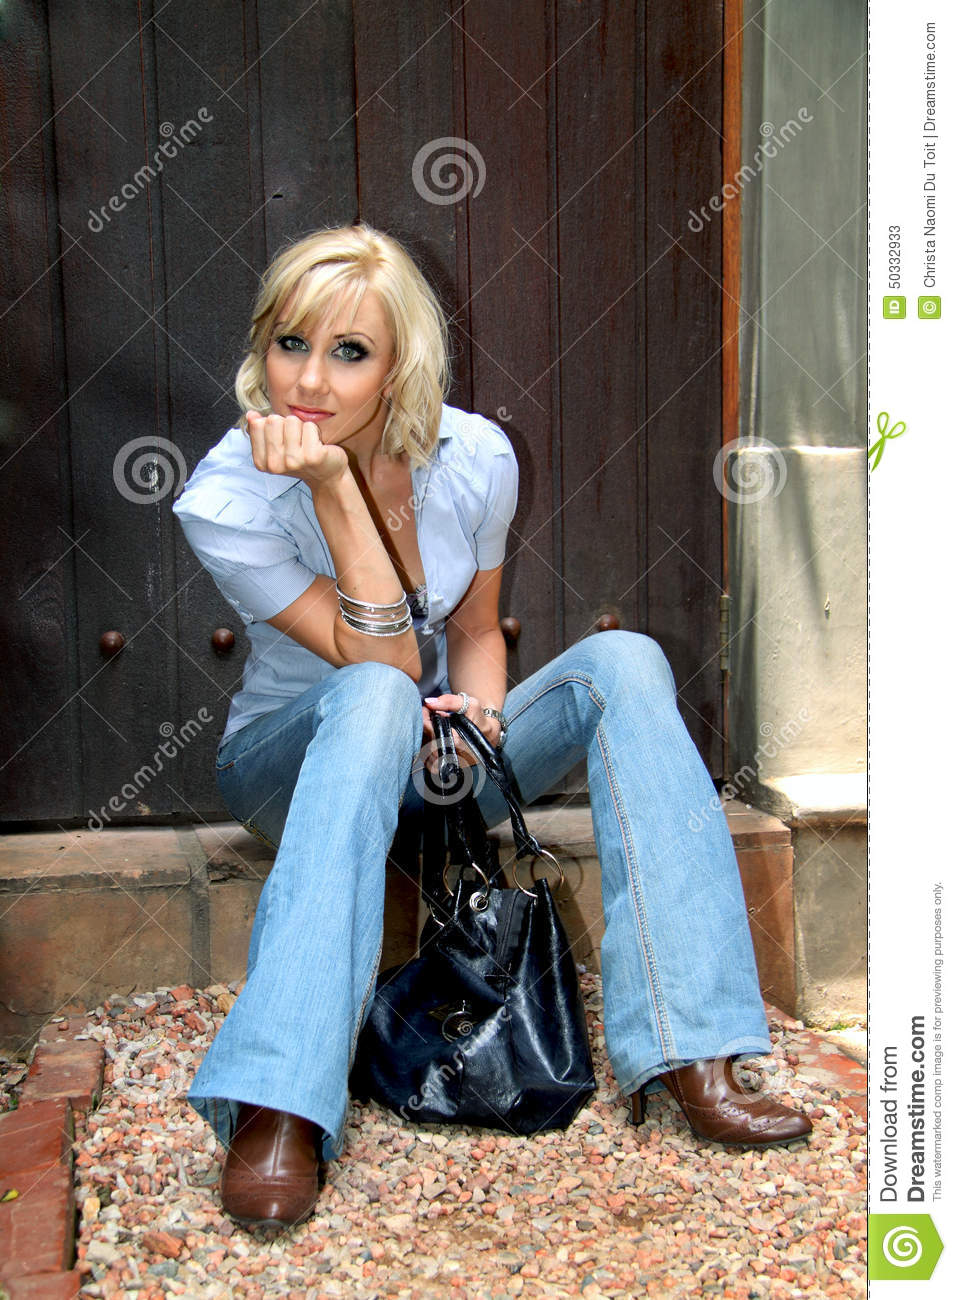 stylish fashion glamour model posing with jeans and boots